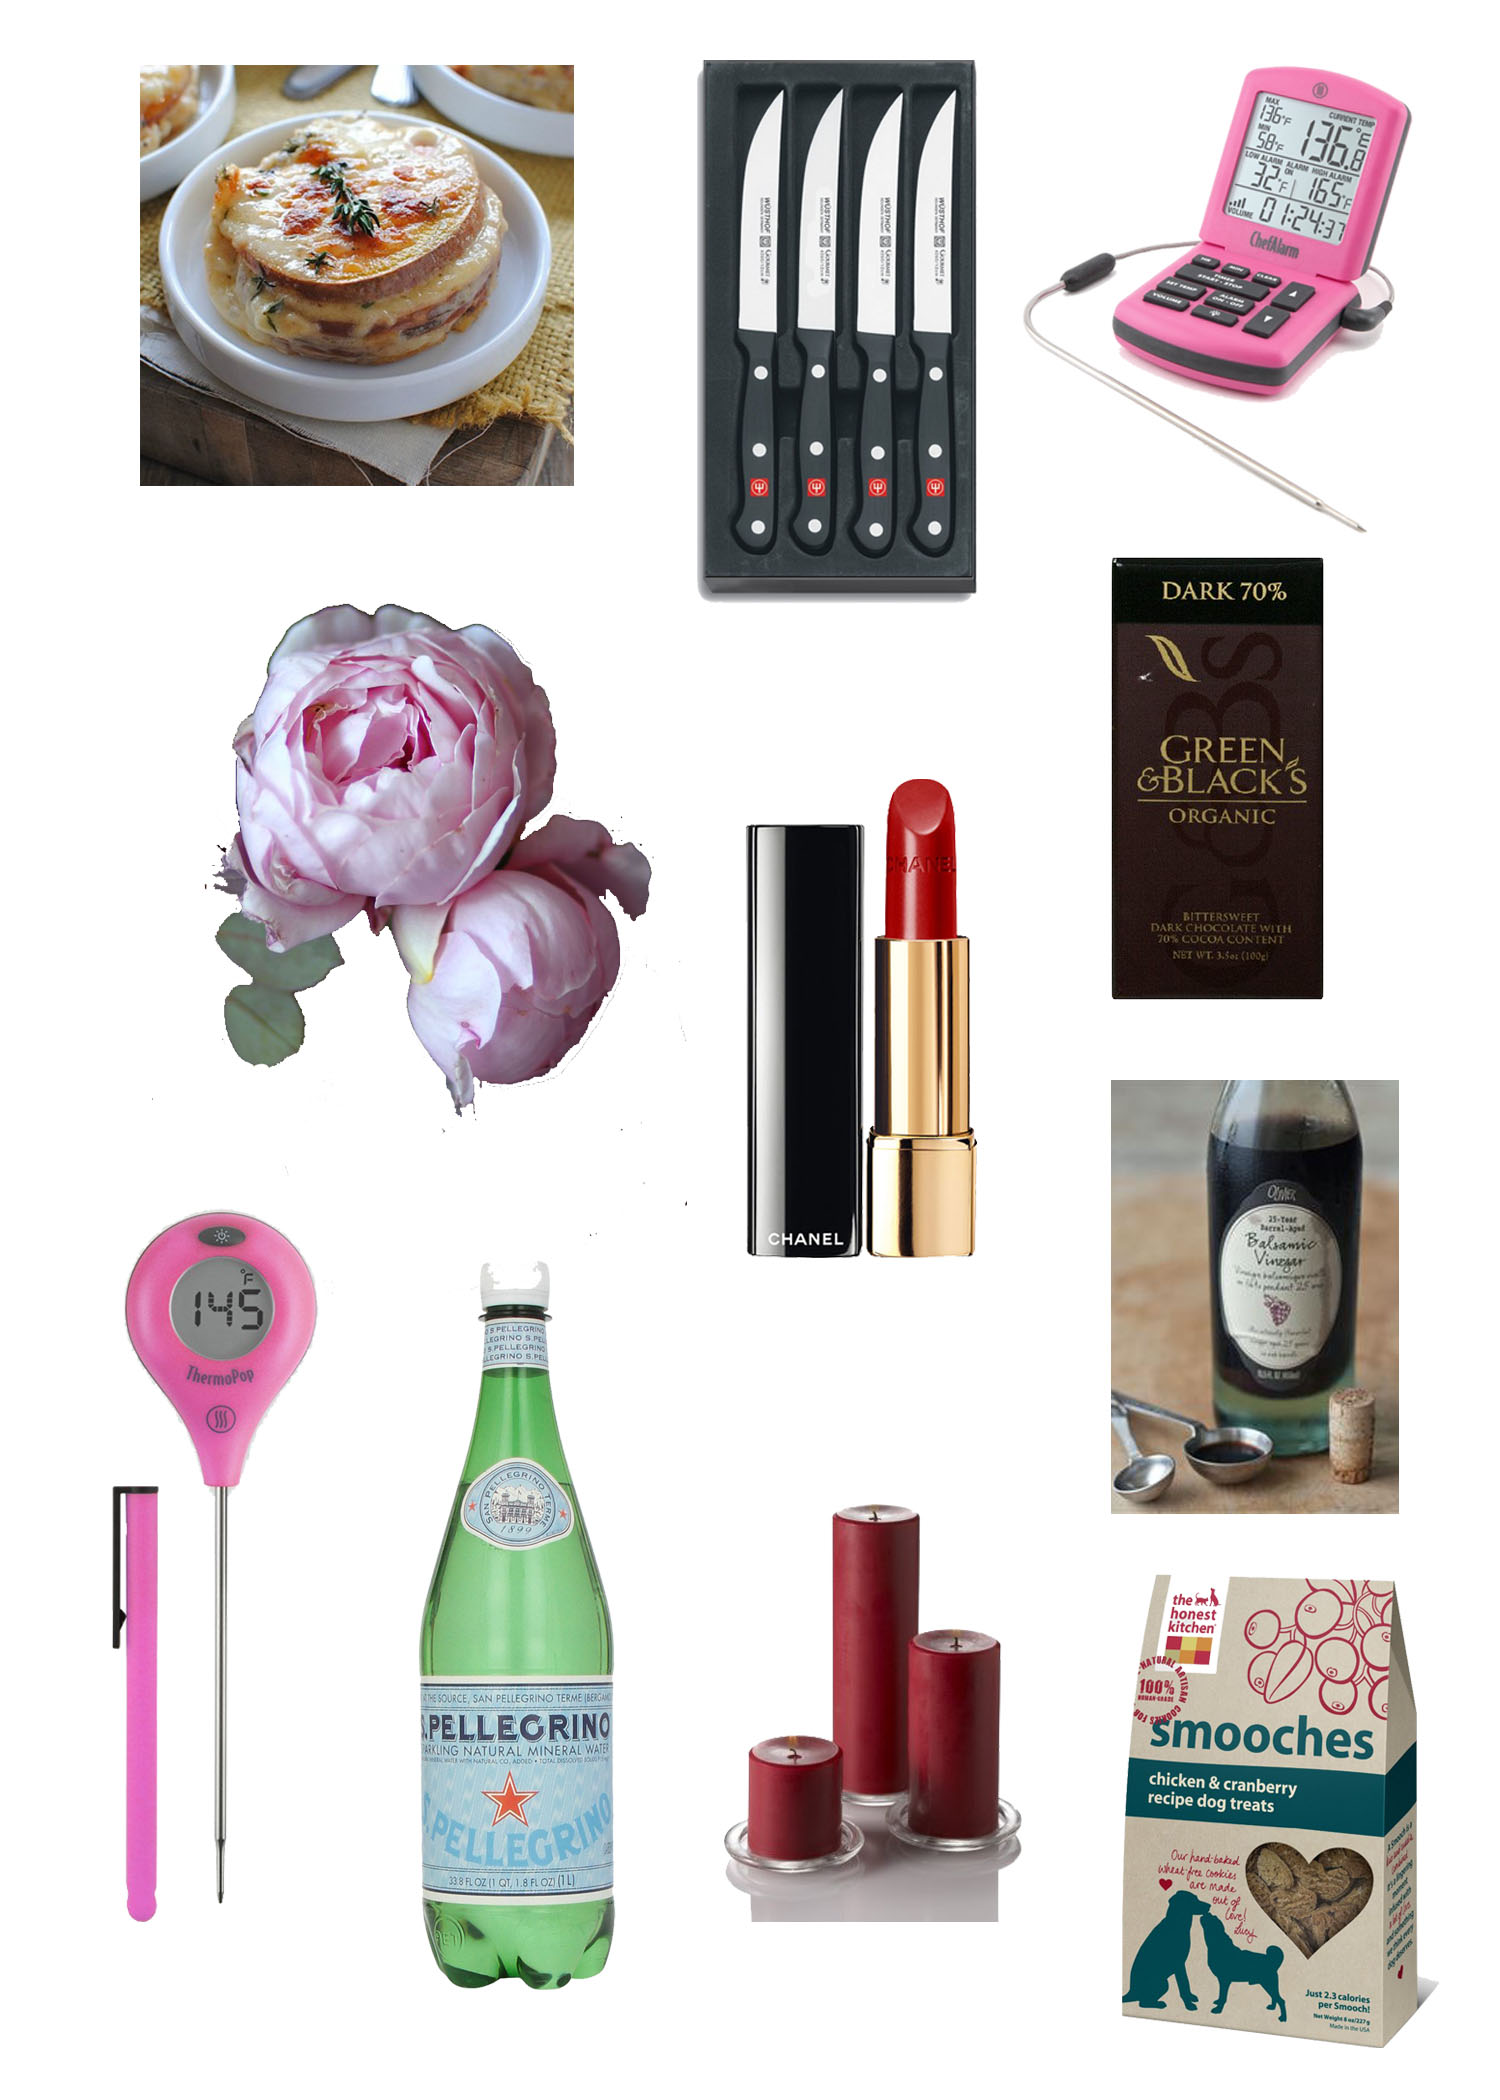 Ingredients for a Perfect Valentine's Day at Home